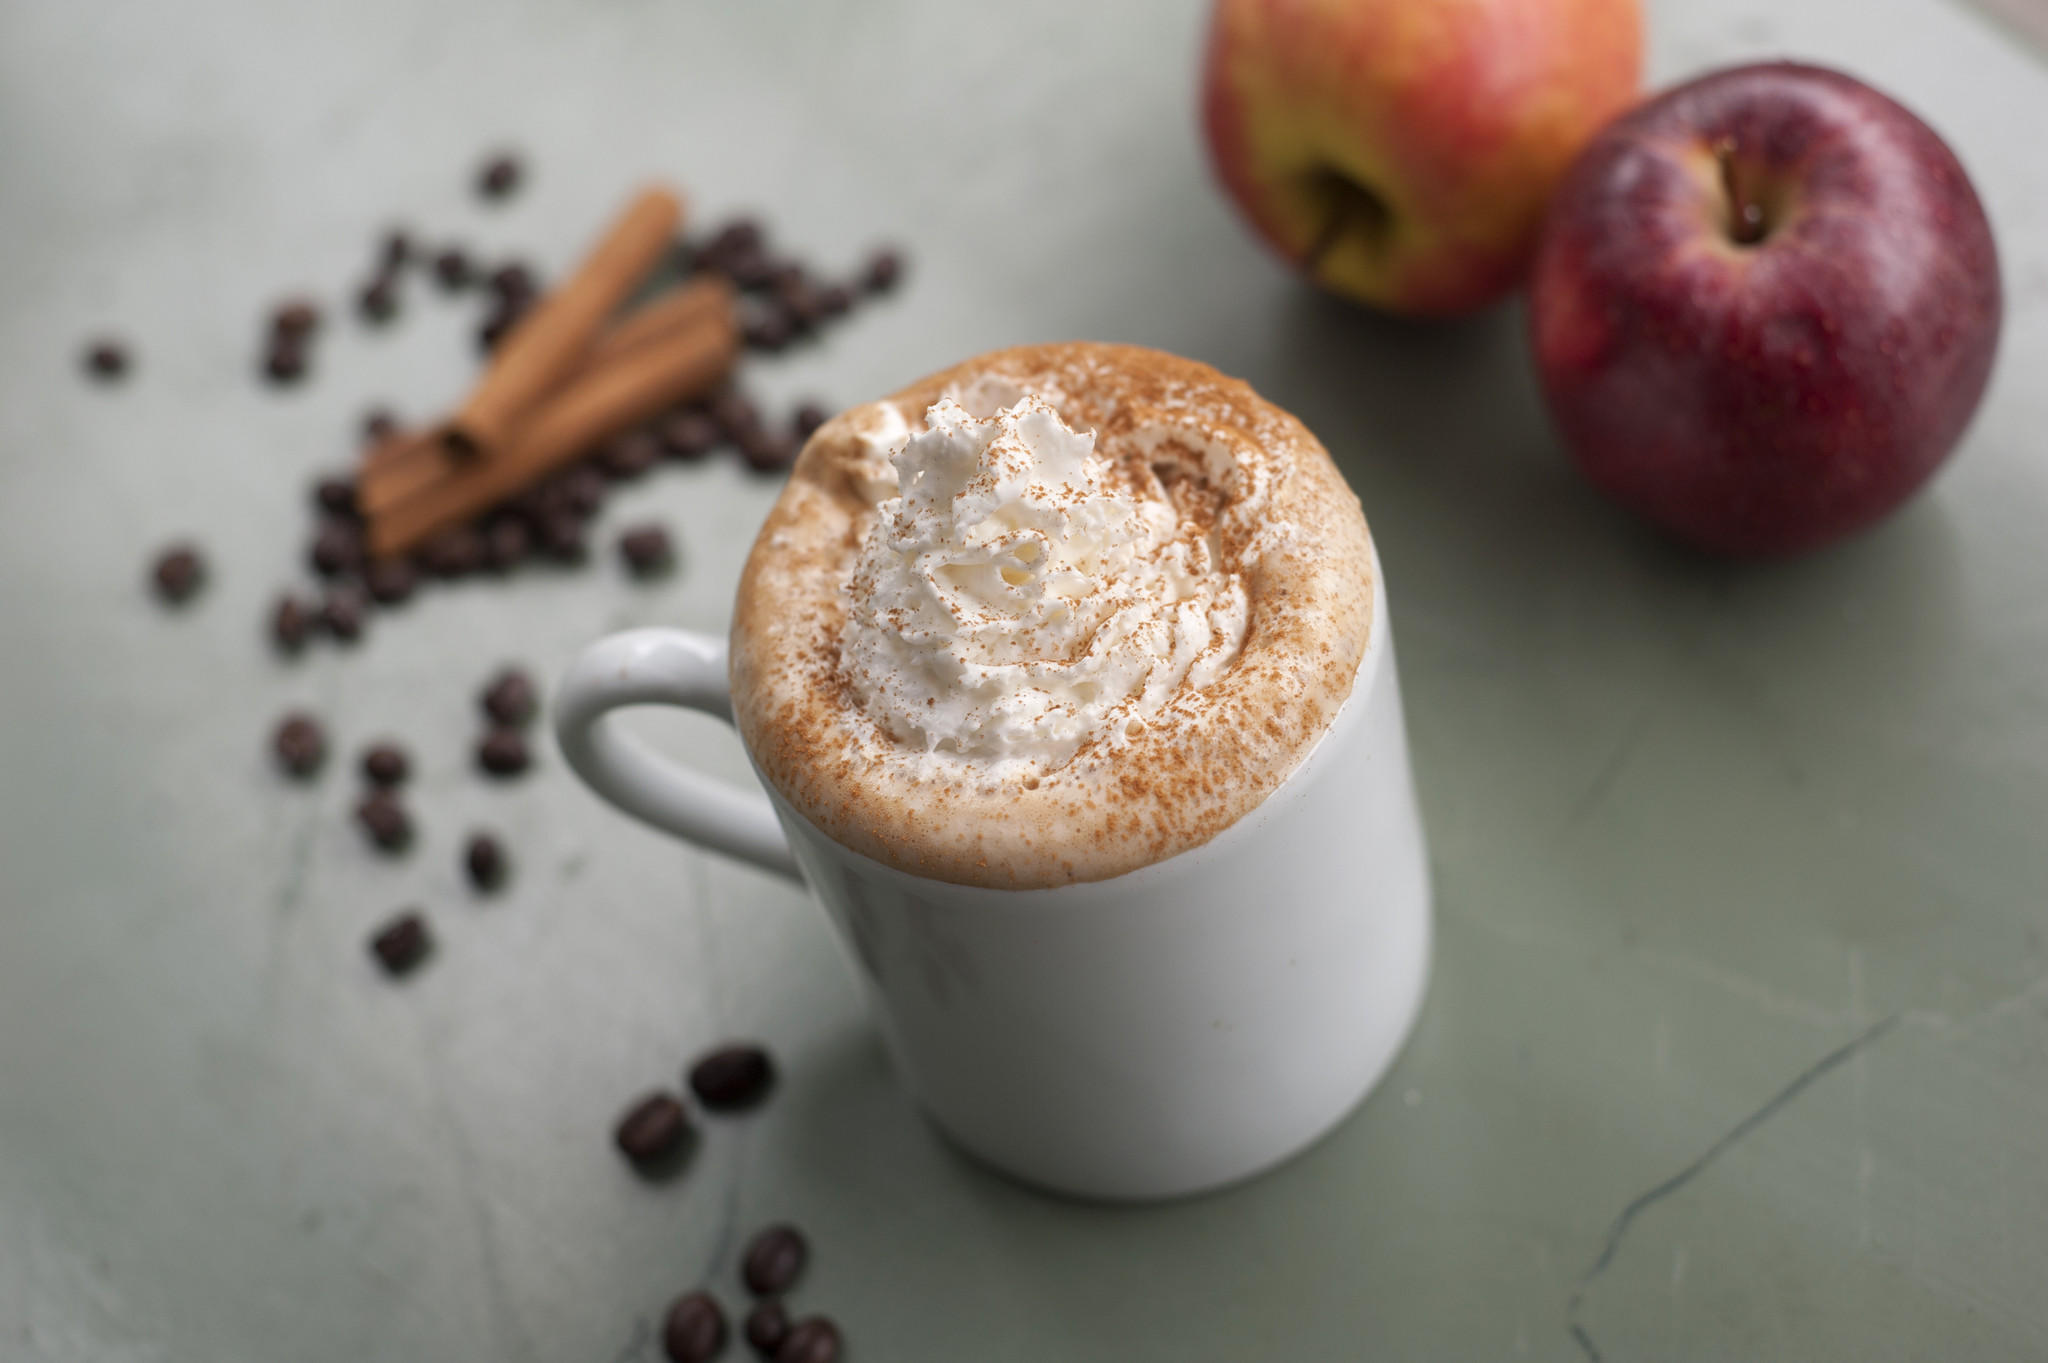 The seasonal Apple Pie Latte offered at Coffee & Tea Exchange (3311 N Boradway) in Chicago, IL on October 15, 2013. Kaitlyn McQuaid for RedEye